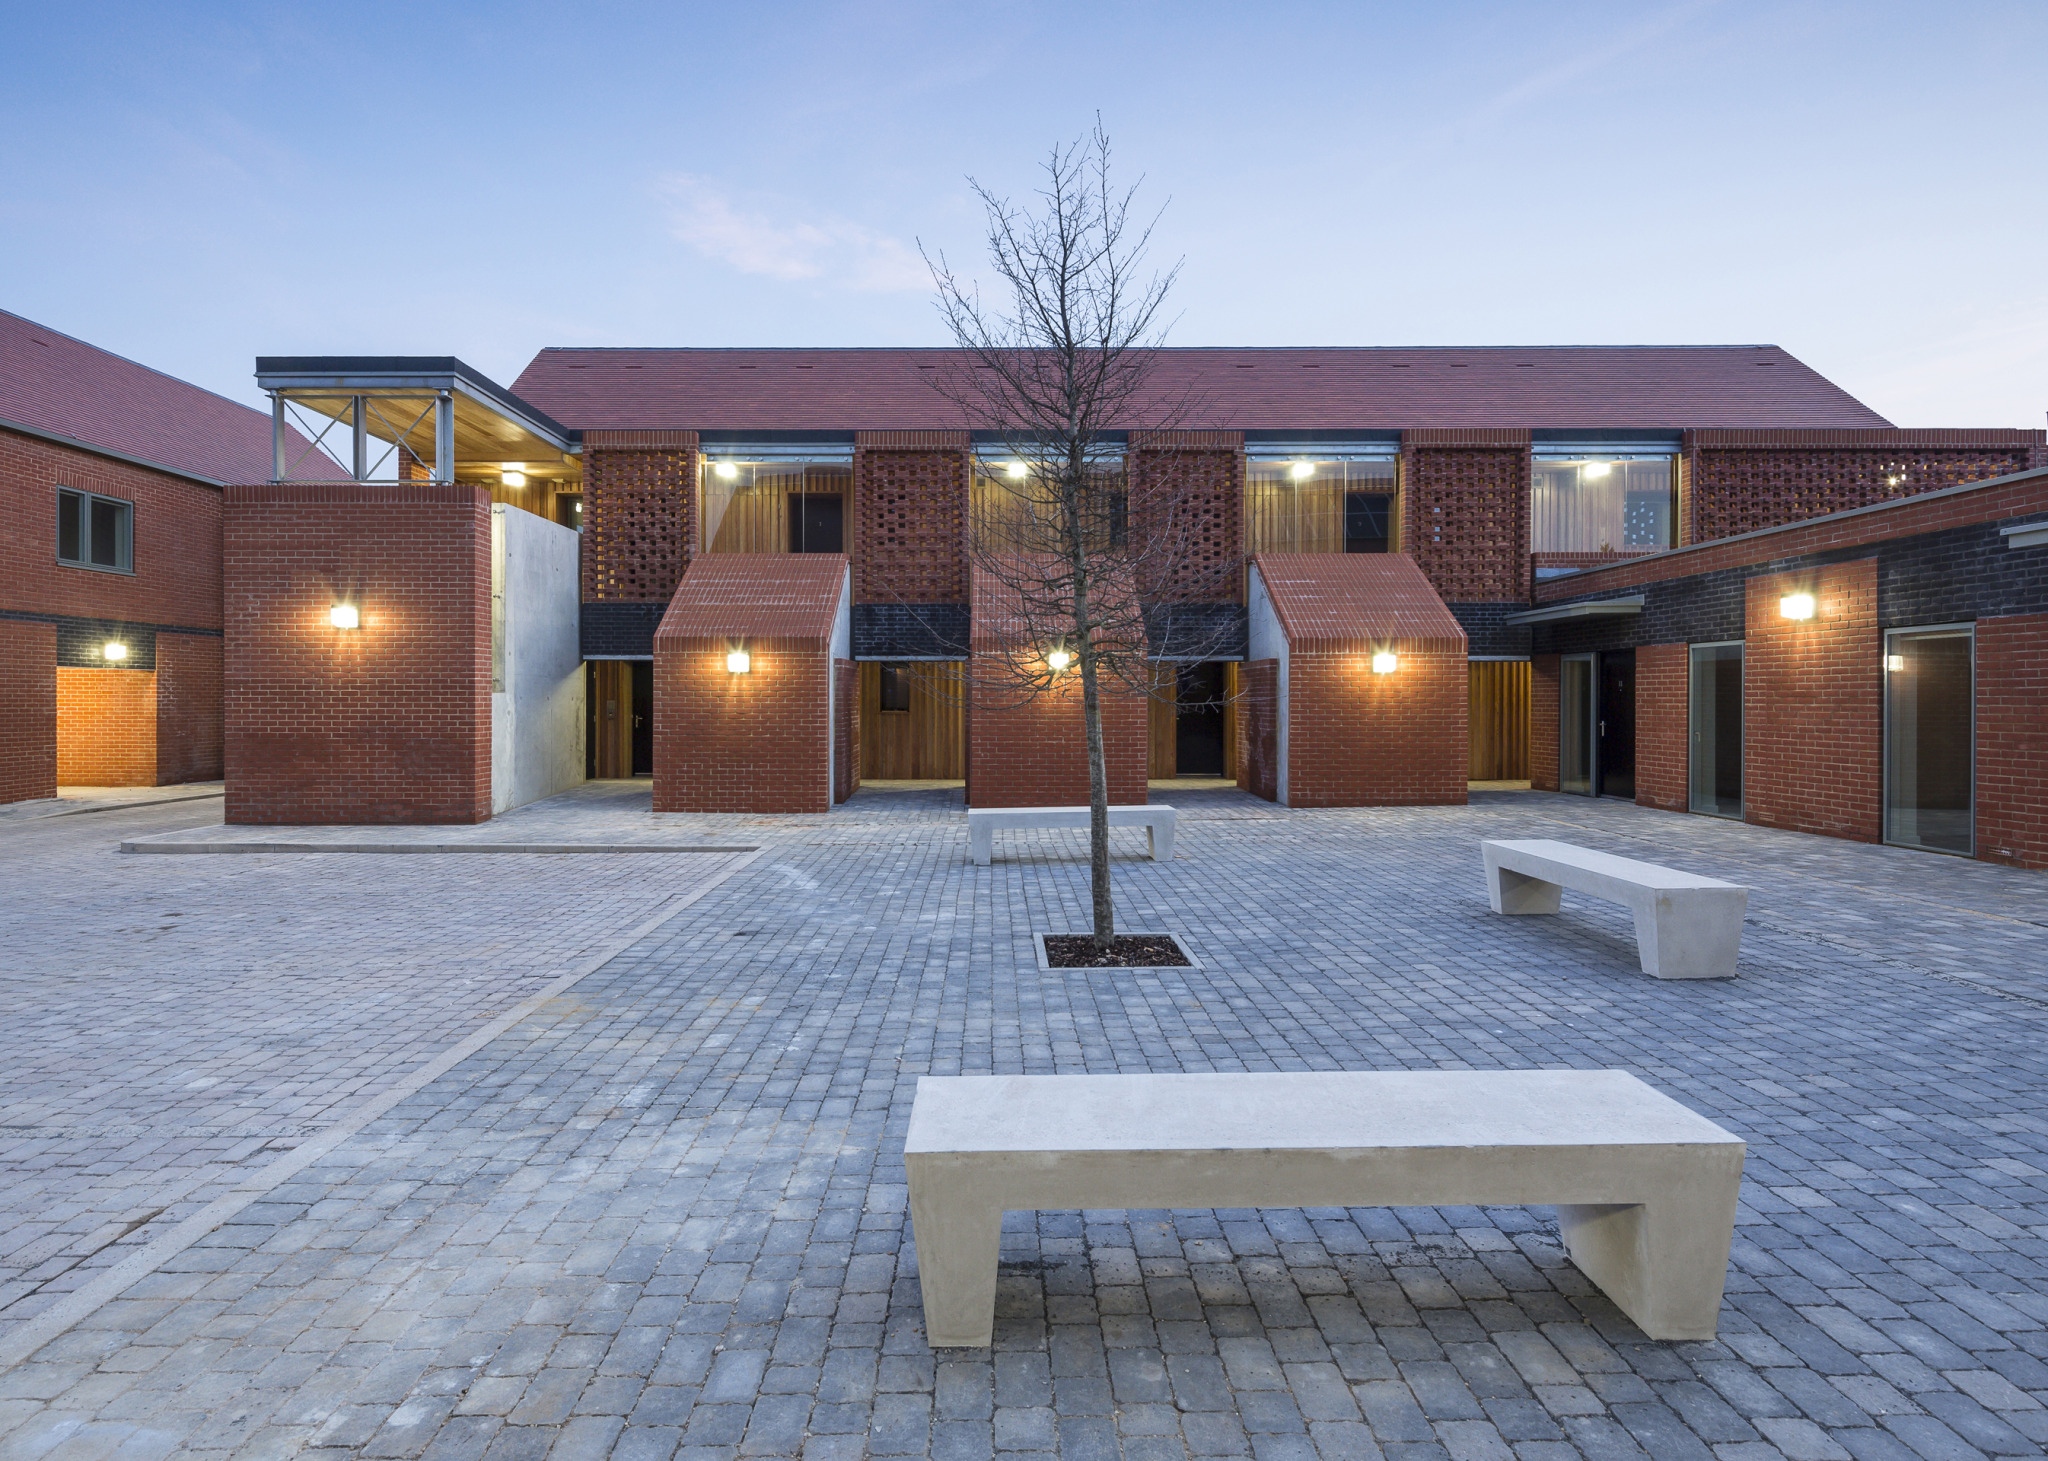 Housing for the homeless scheme gets national attention